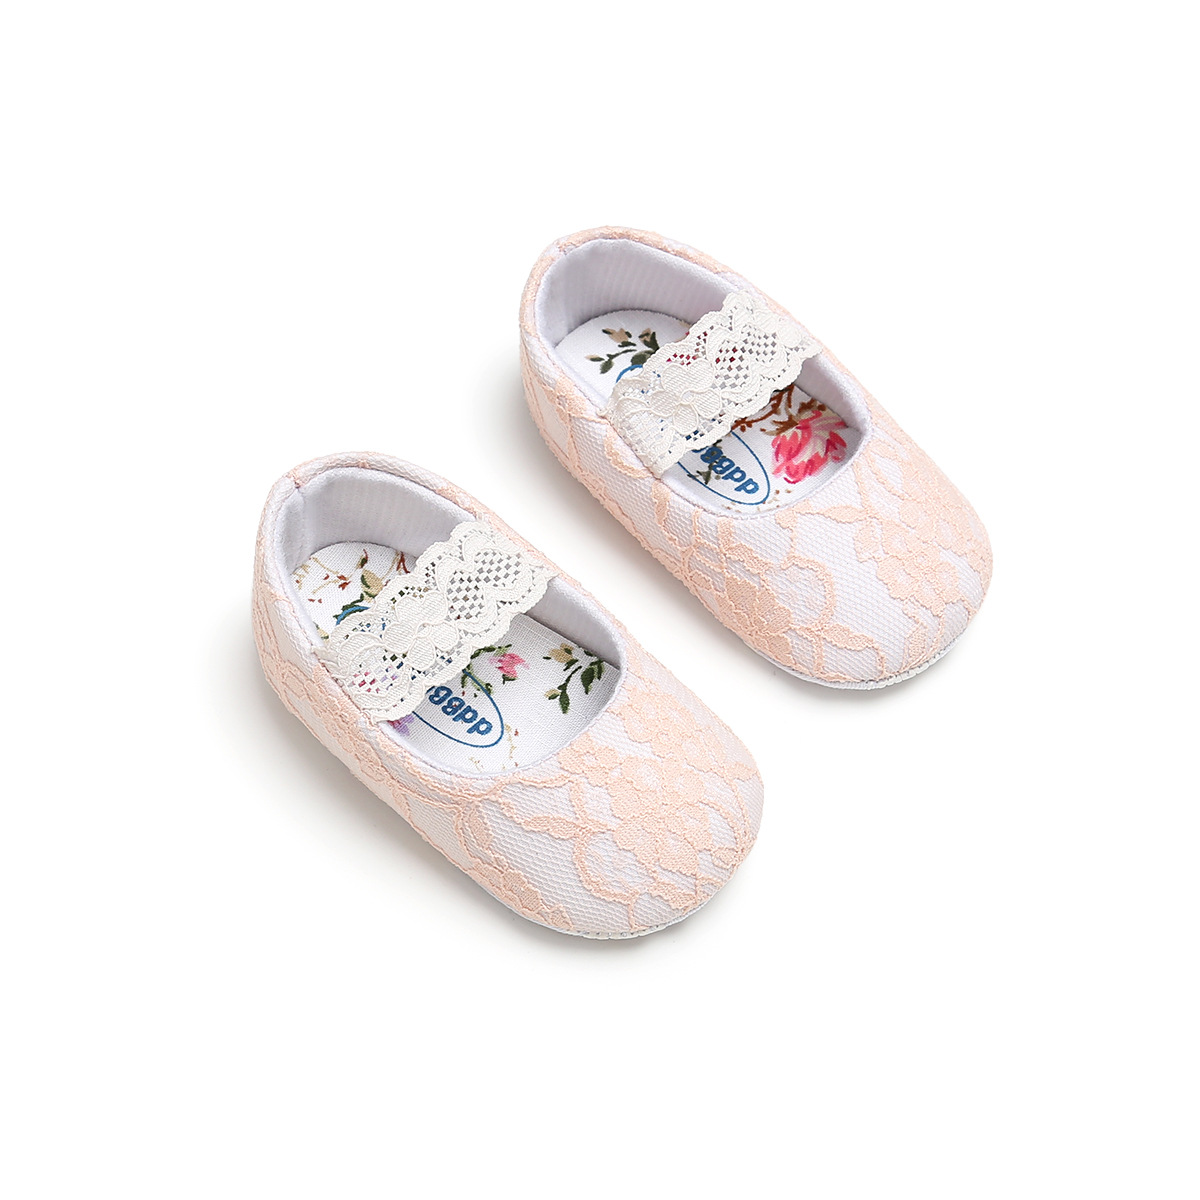 B&G Lace Toddler Walking Shoes Baby Girl Princess Shoes Soft Anti-slip Babyfirst Walkers